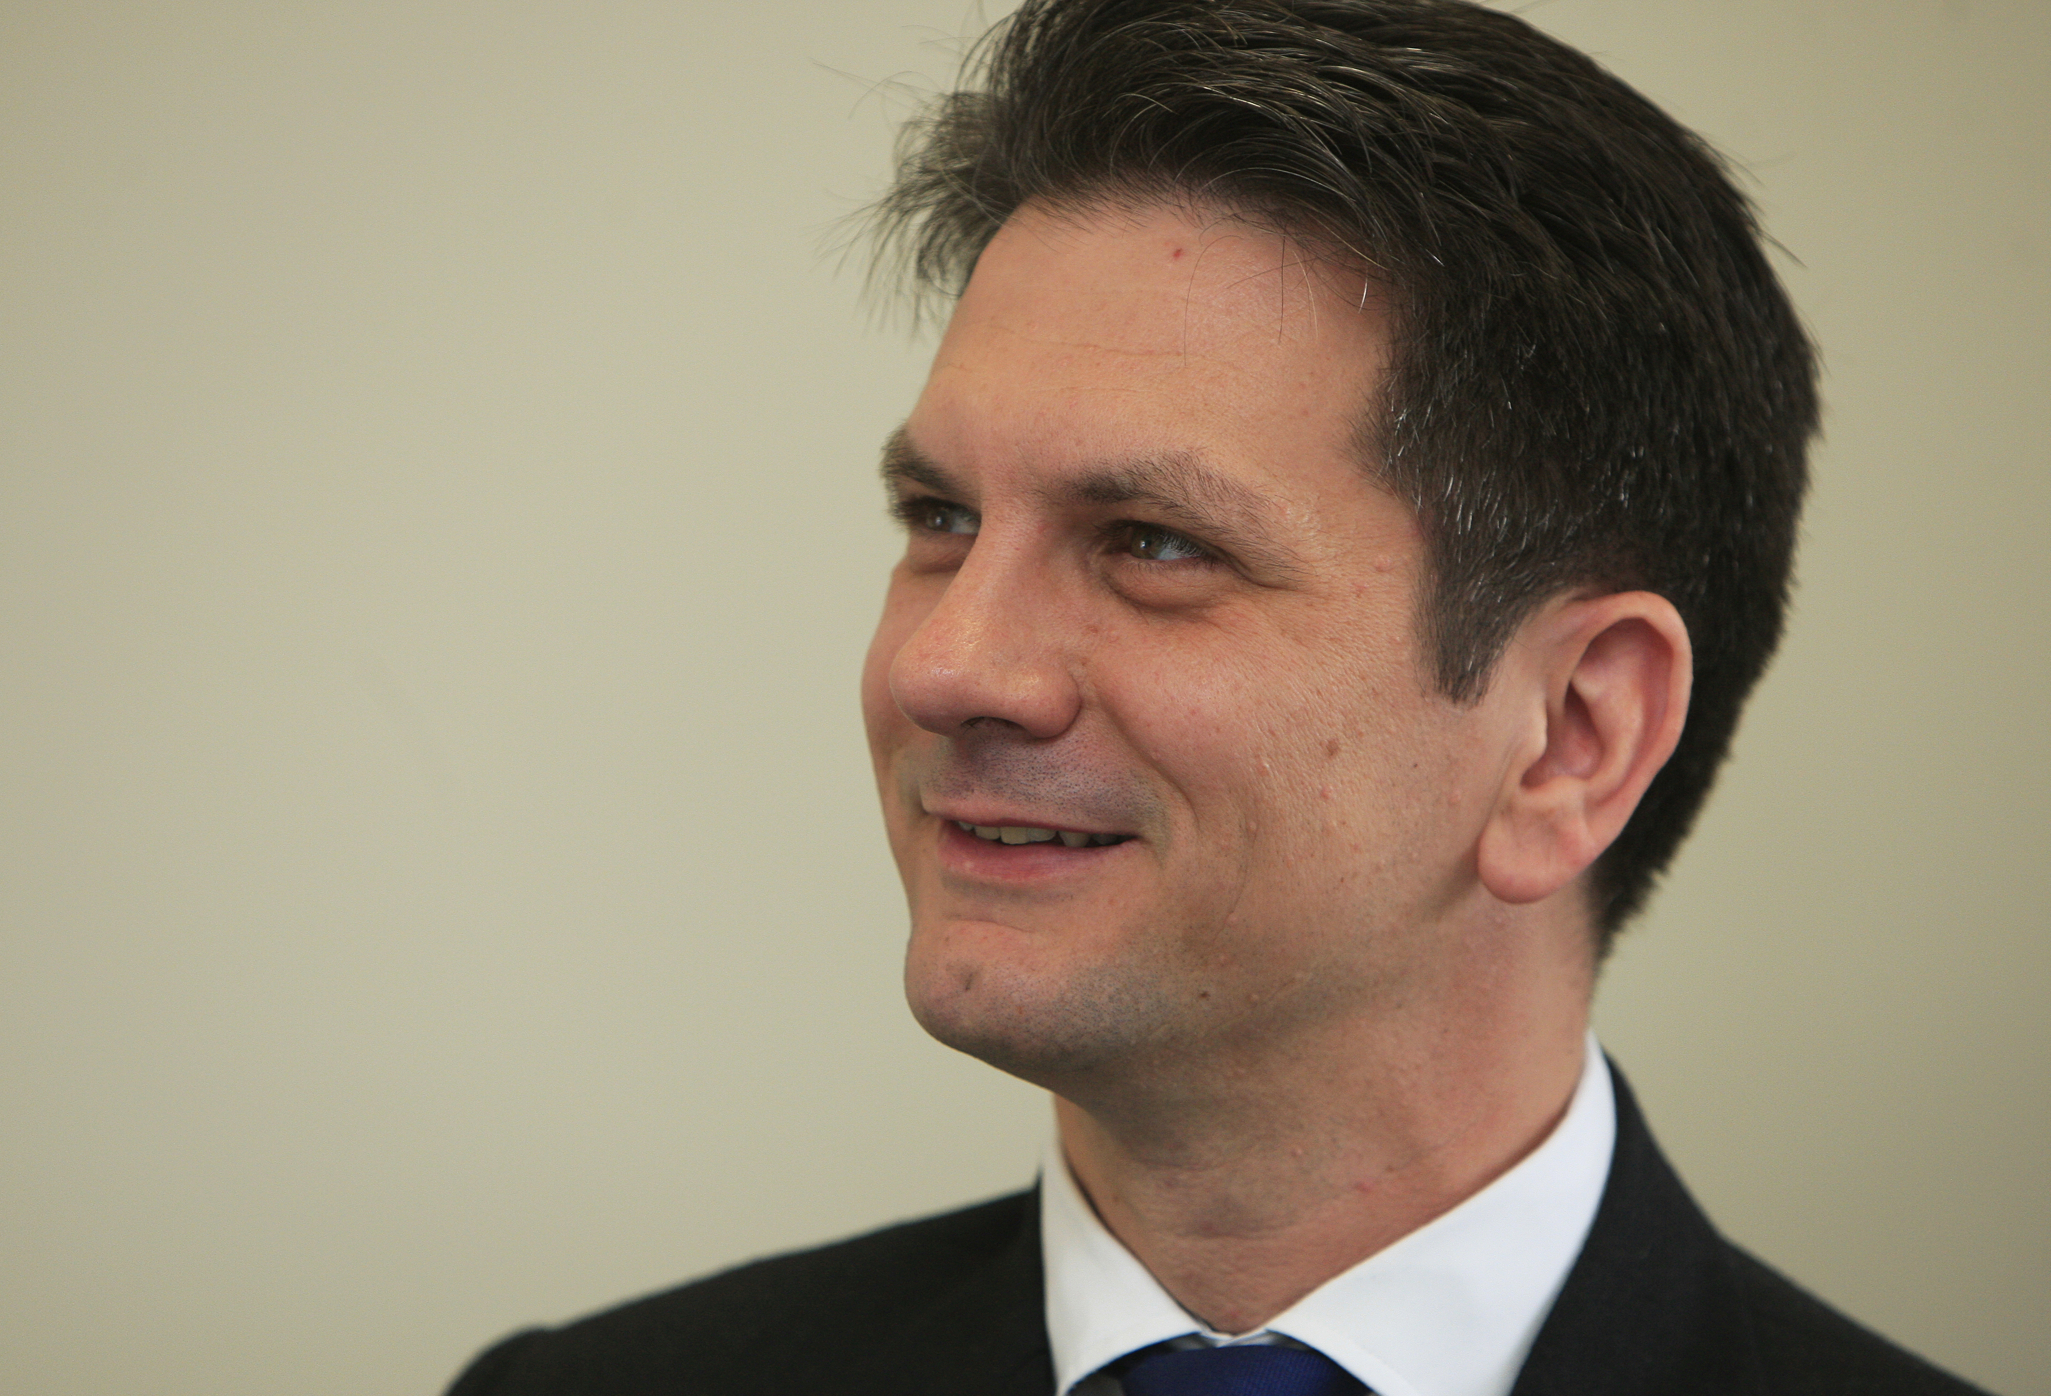 Steve Baker has been tipped for the Brexiteer-friendly new role